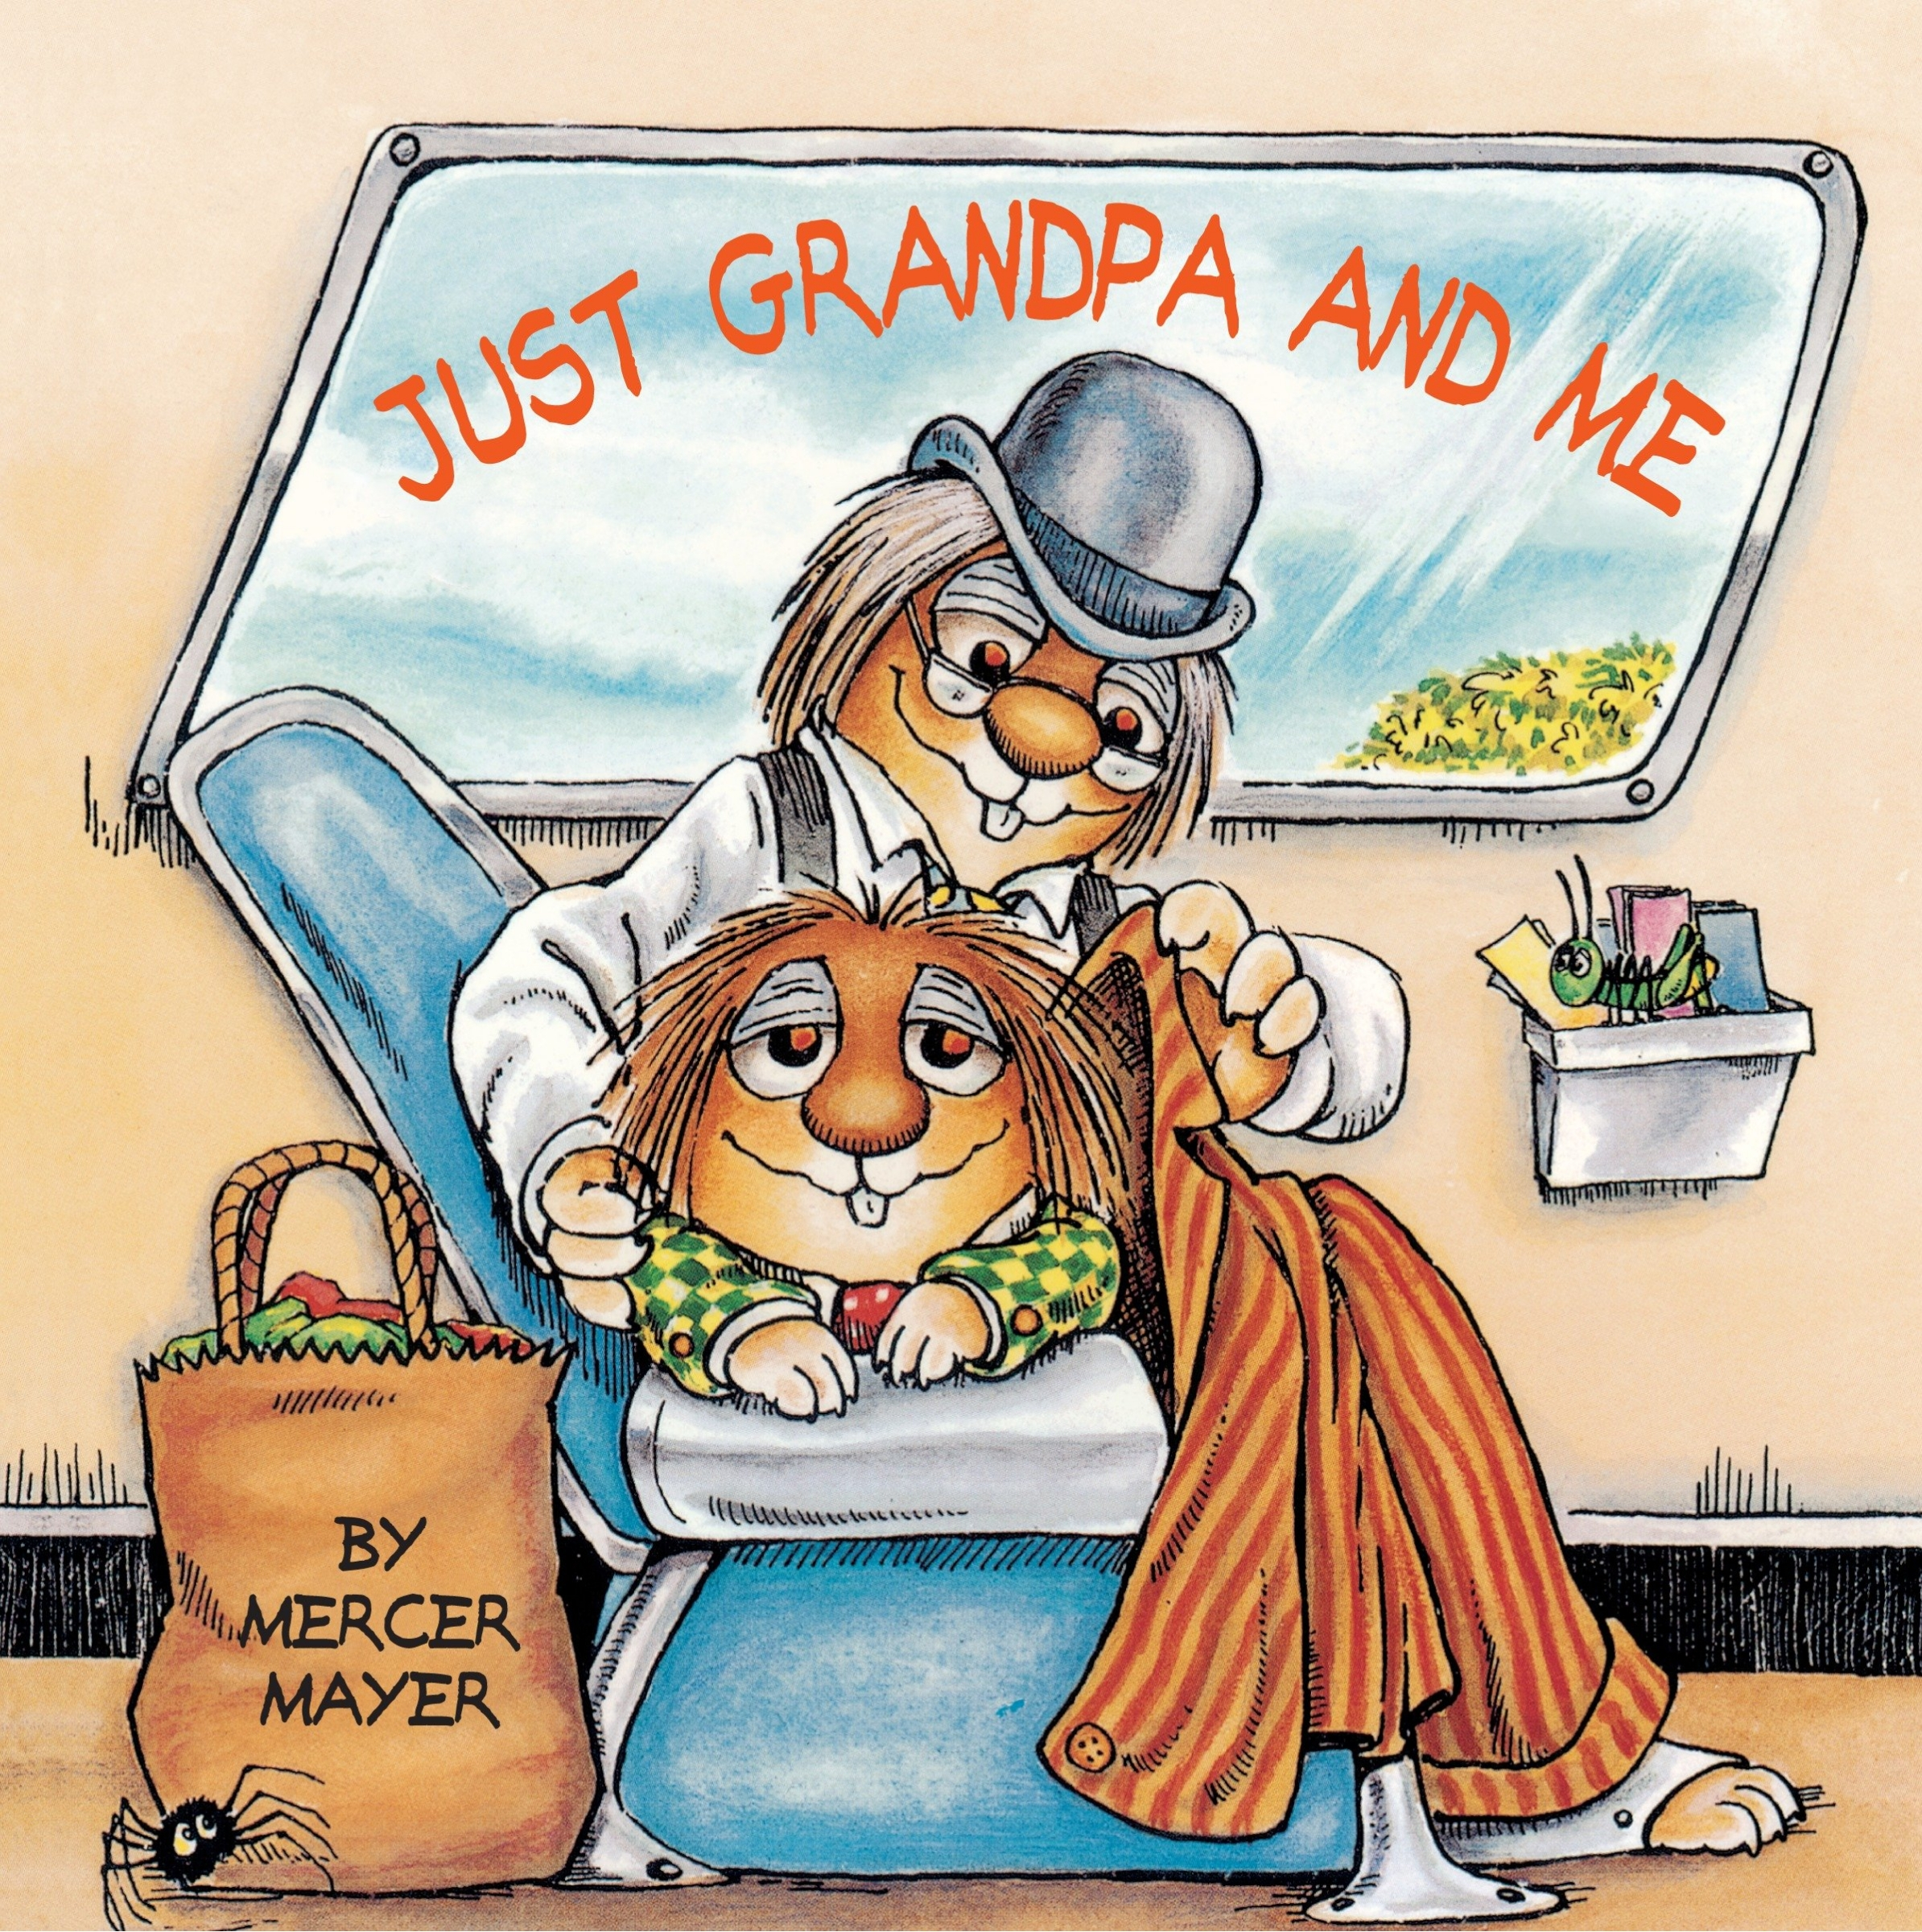 Book Just Grandpa And Me (little Critter) by Mercer Mayer